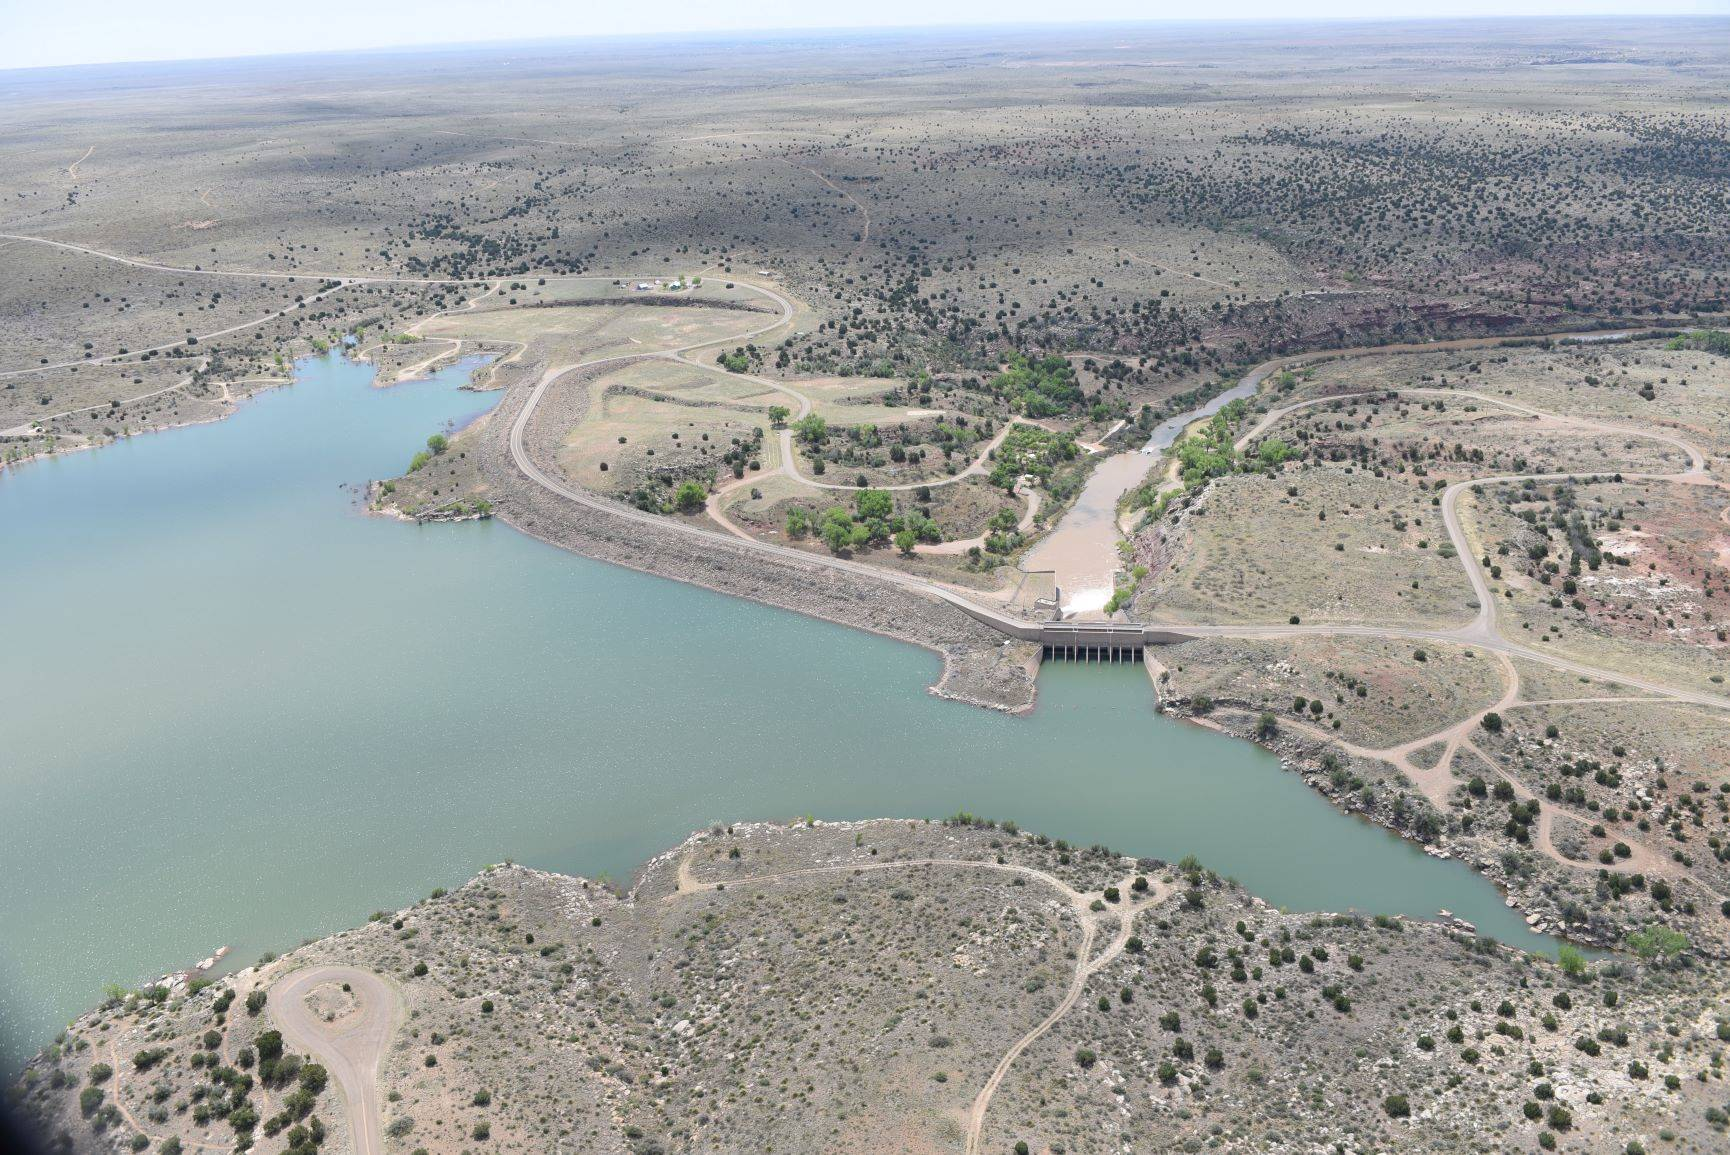 Lake Sumner and Sumner Dam flowing into the Pecos River